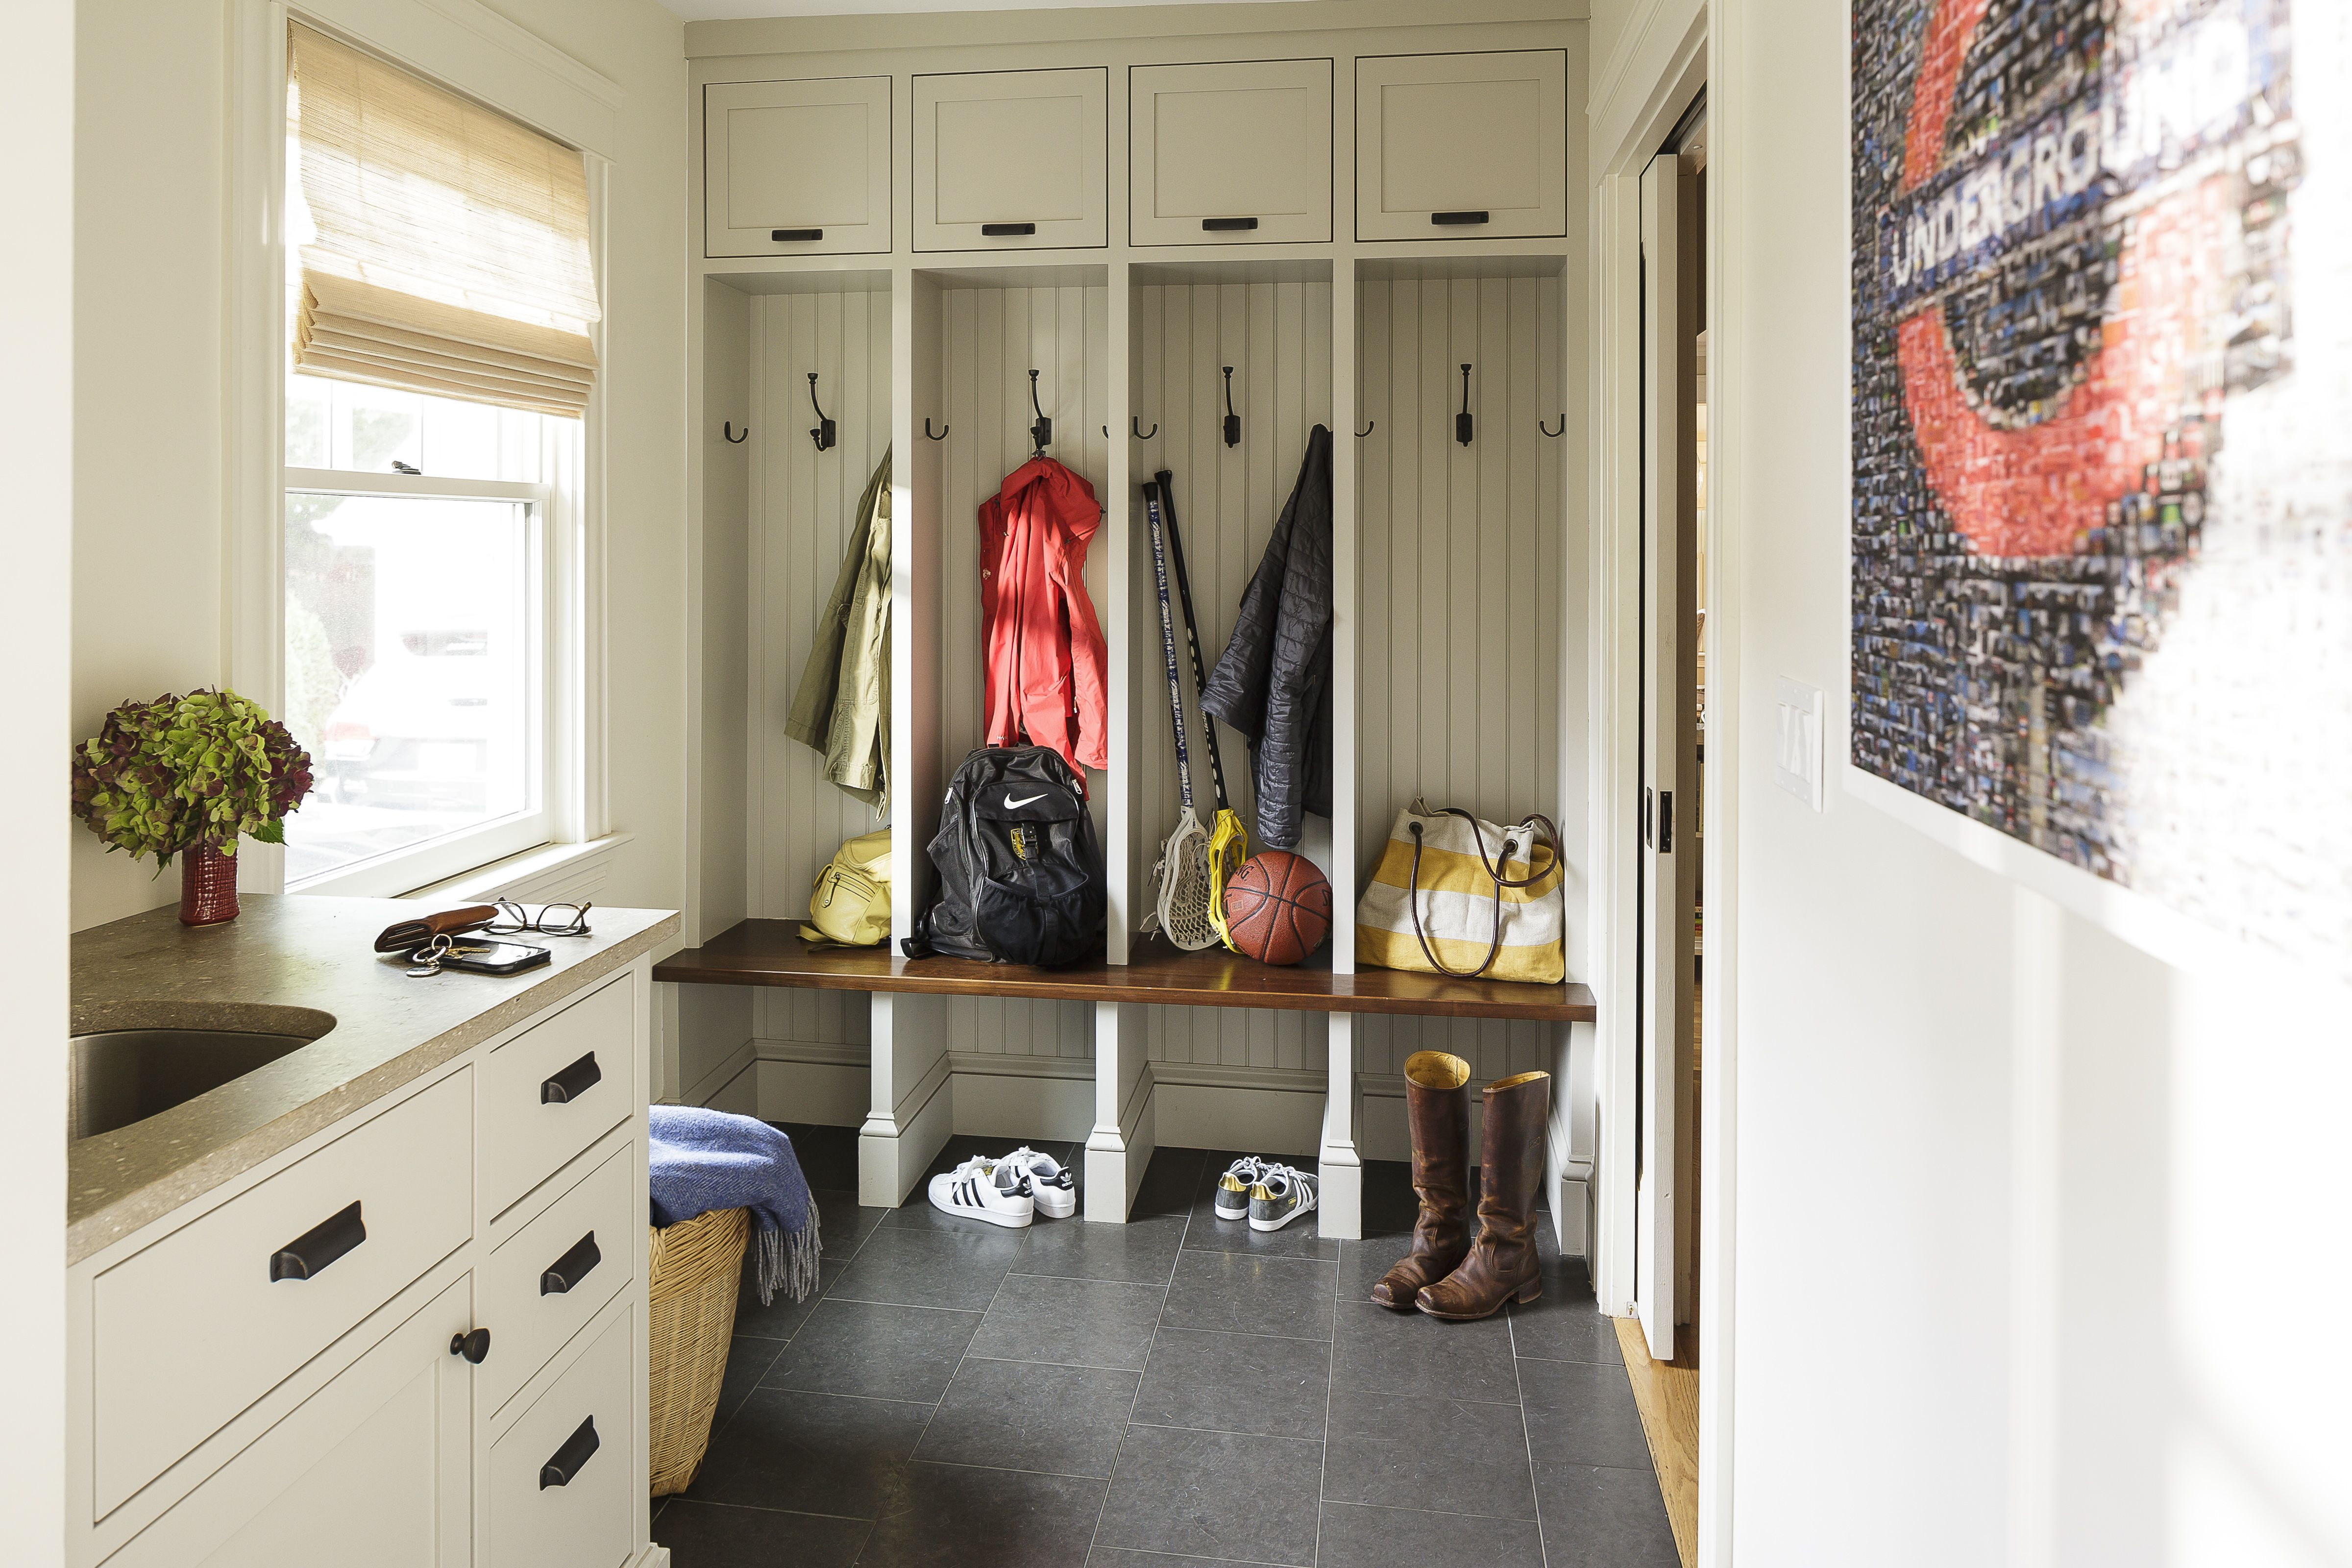 27 Smart Mudroom Ideas - Stylish Mudroom Benches & Storage on security system layout, furniture layout, recipes layout, art layout, laundry room layout, fall layout, exercise room layout, pattern layout, books layout, sunroom layout, halloween layout, foyer layout, family room layout, carpet layout, ikea layout, landscaping layout, food layout, flowers layout, summer layout, green layout,